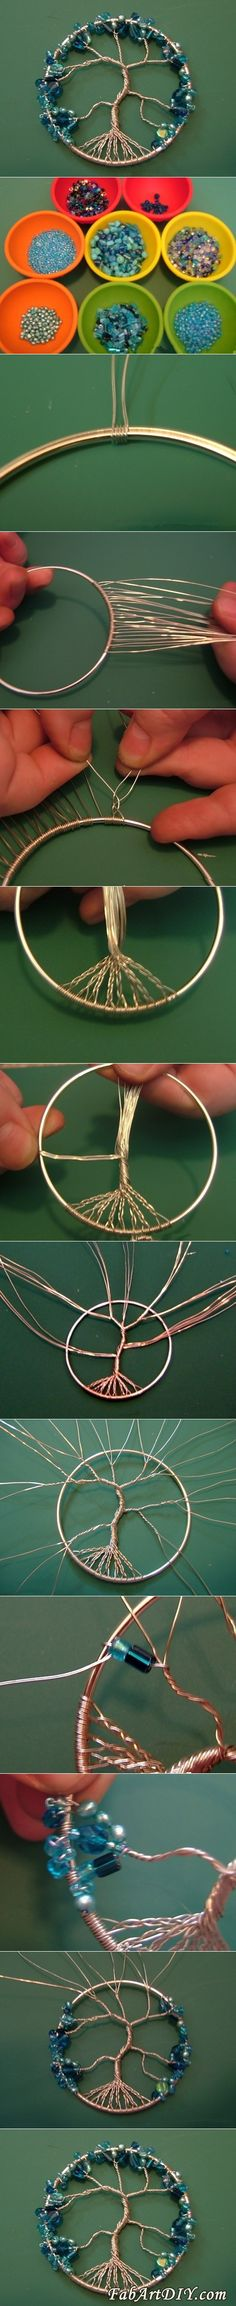 dream catcher tutorials